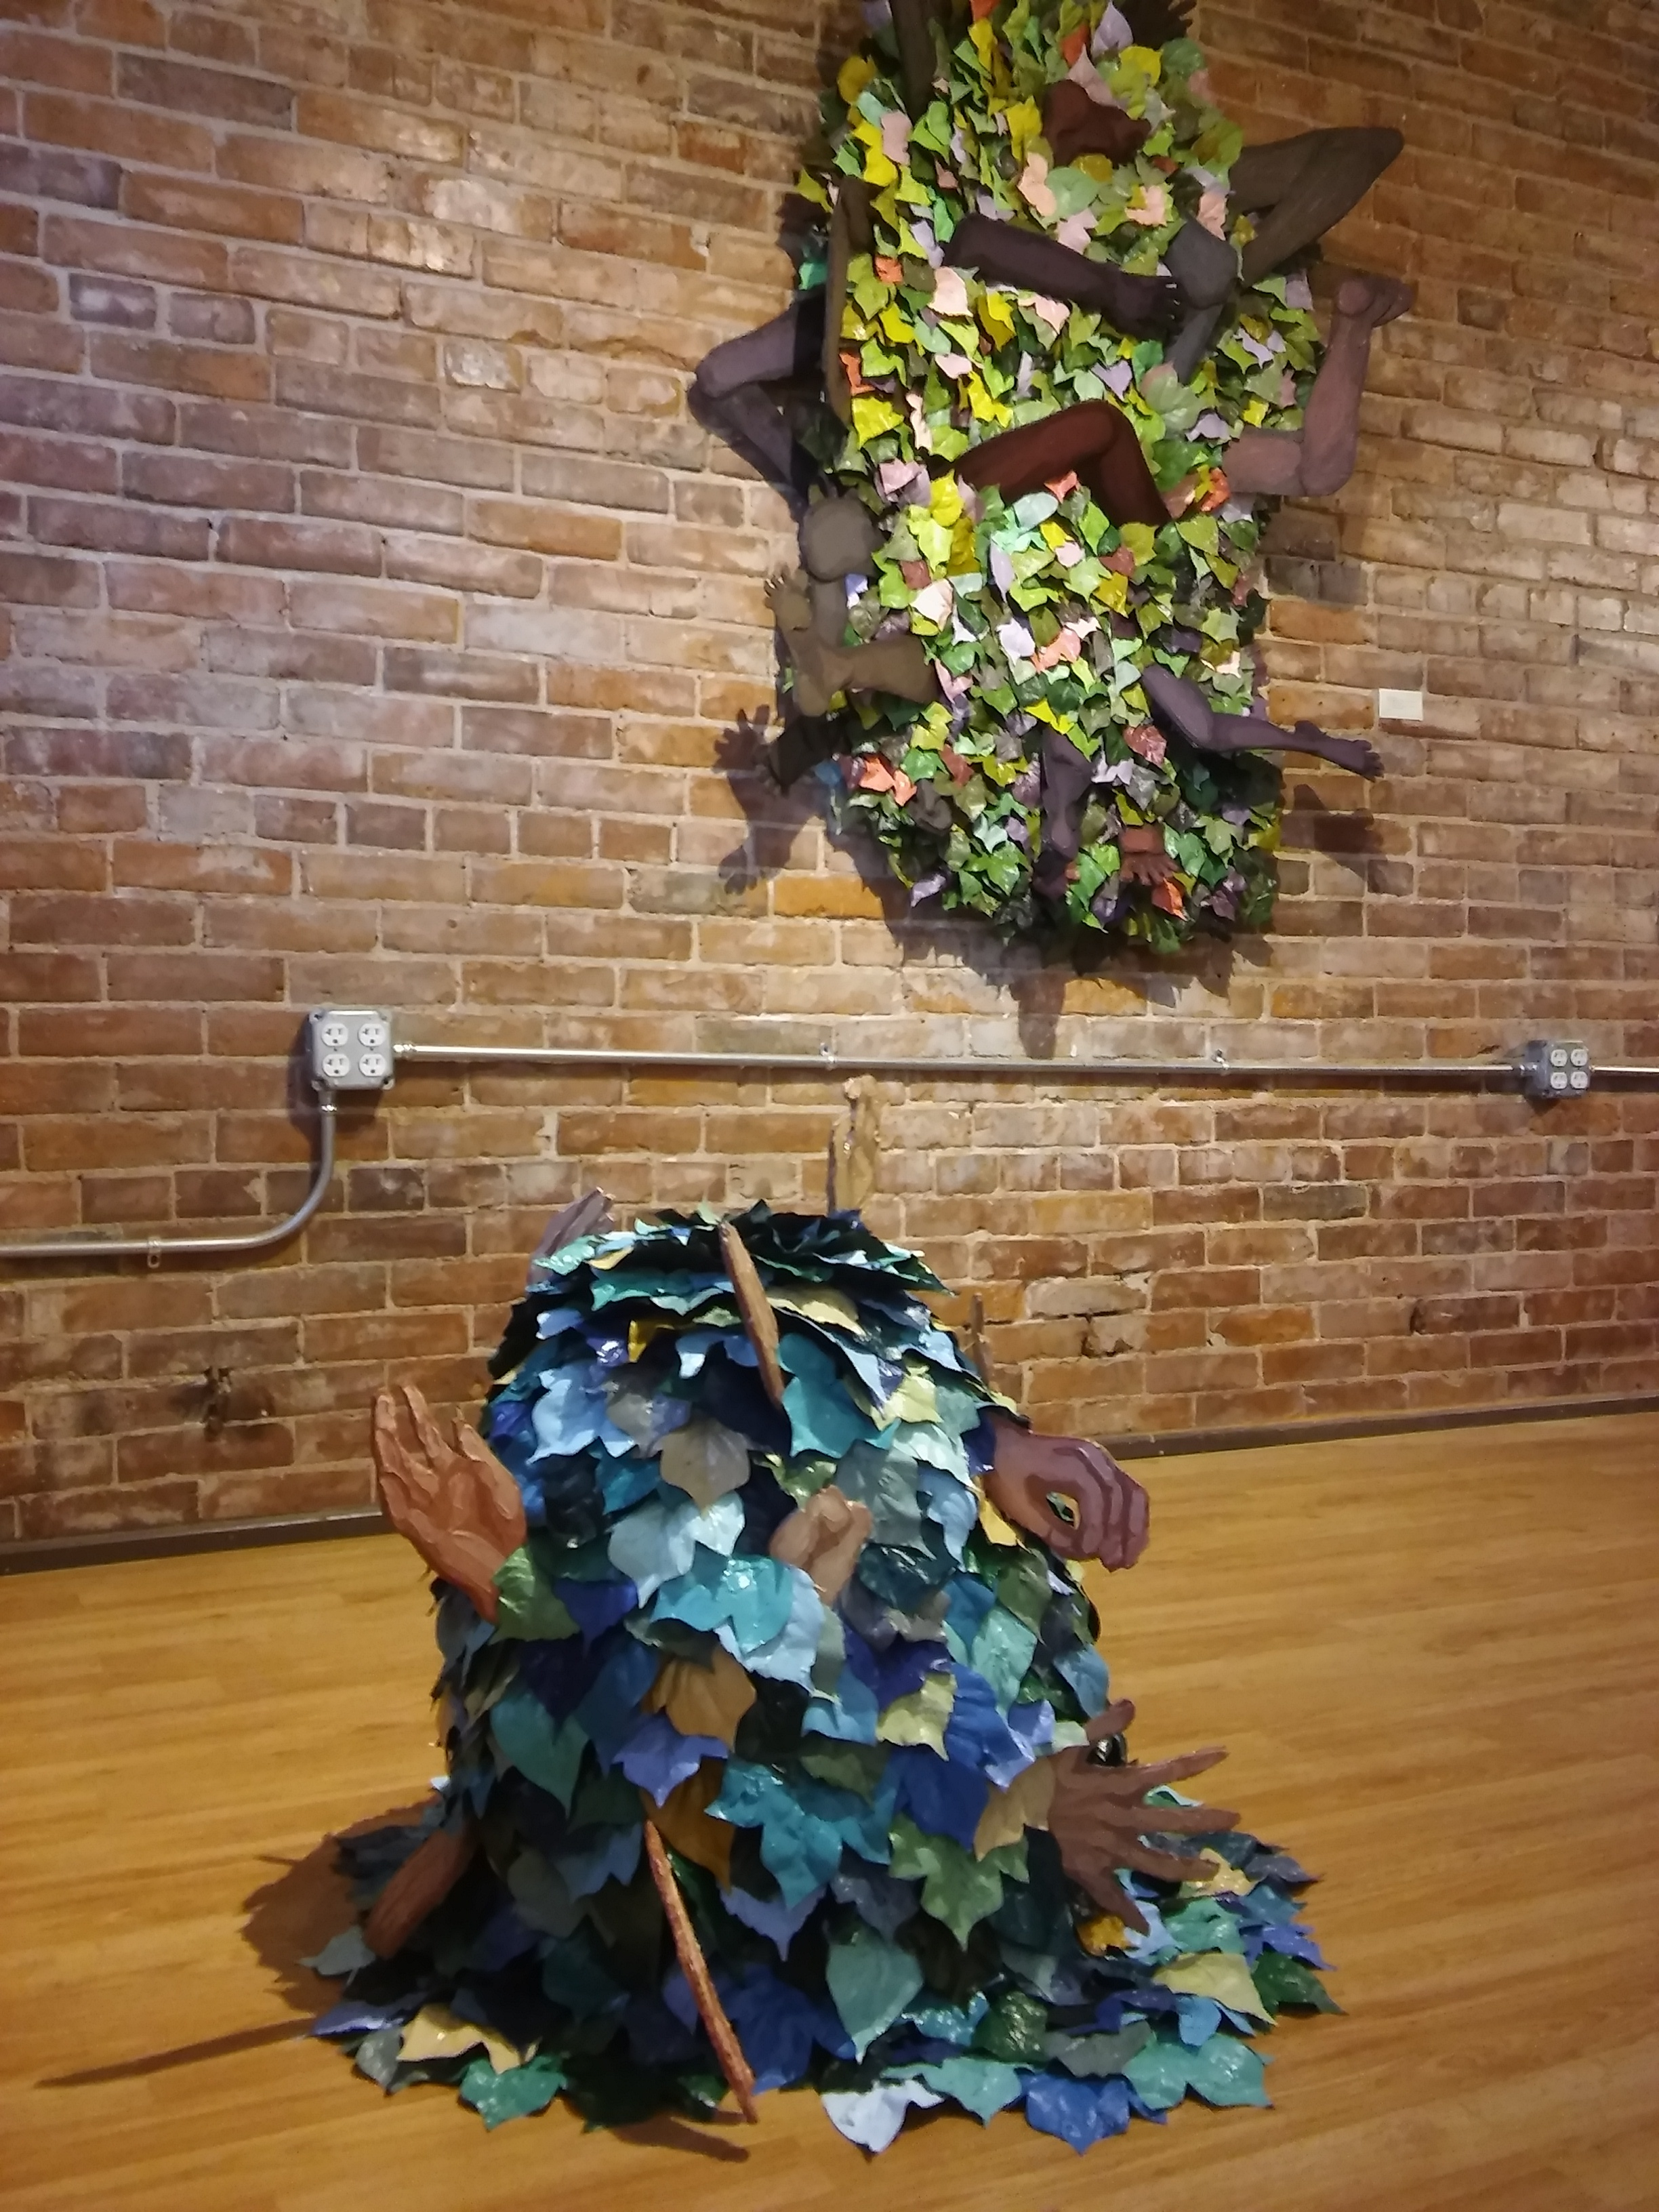 Peanut Gallery is a new collaborative studio and exhibition space run by Kyle Choy, Madison Svendgard, Alex Bridgman, and Brian Andrew Coate. Located in the Parrish Studios in Downtown Lincoln Nebraska.